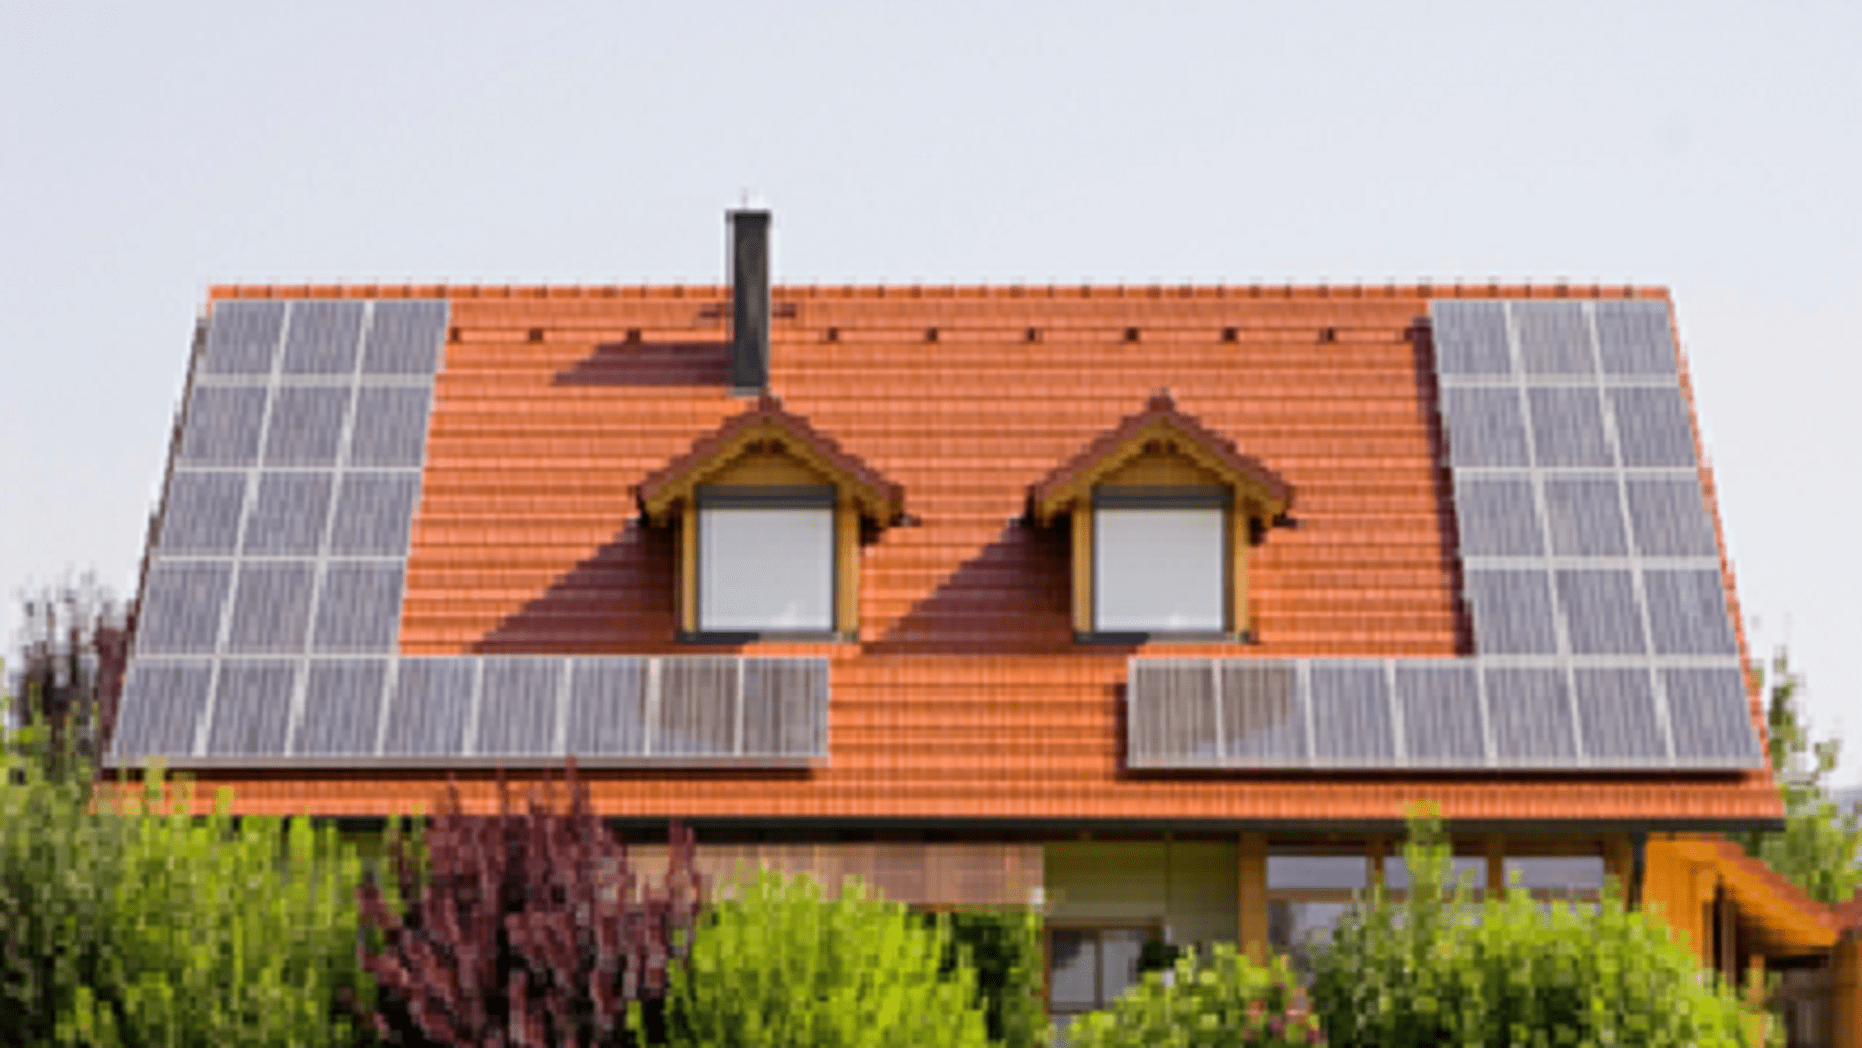 California homes built in 2020 and later will be required to install solar panels.